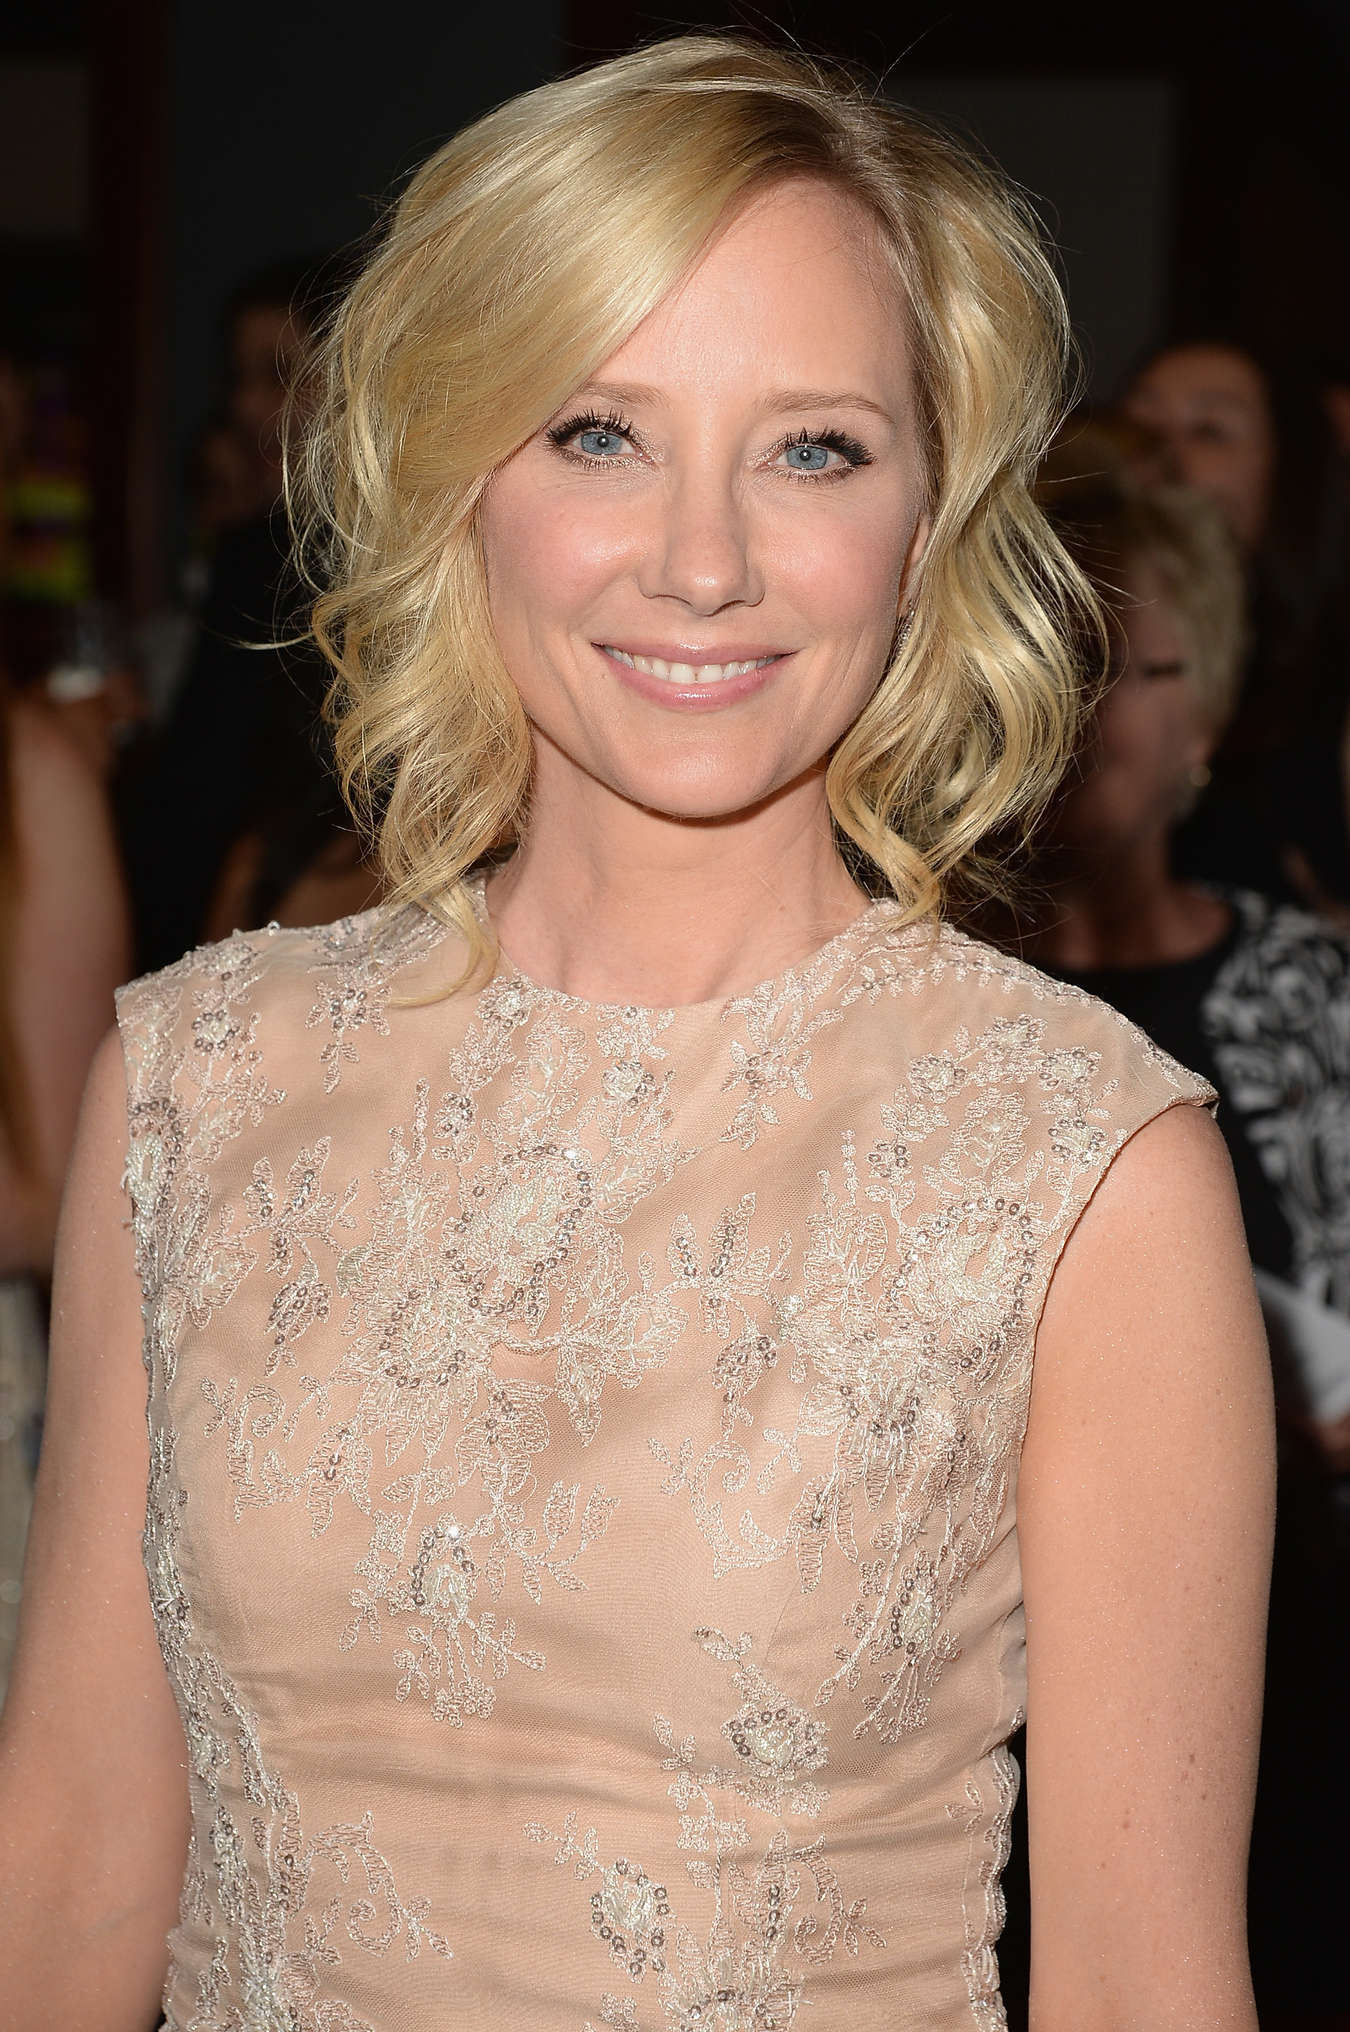 Actress: Anne-Heche